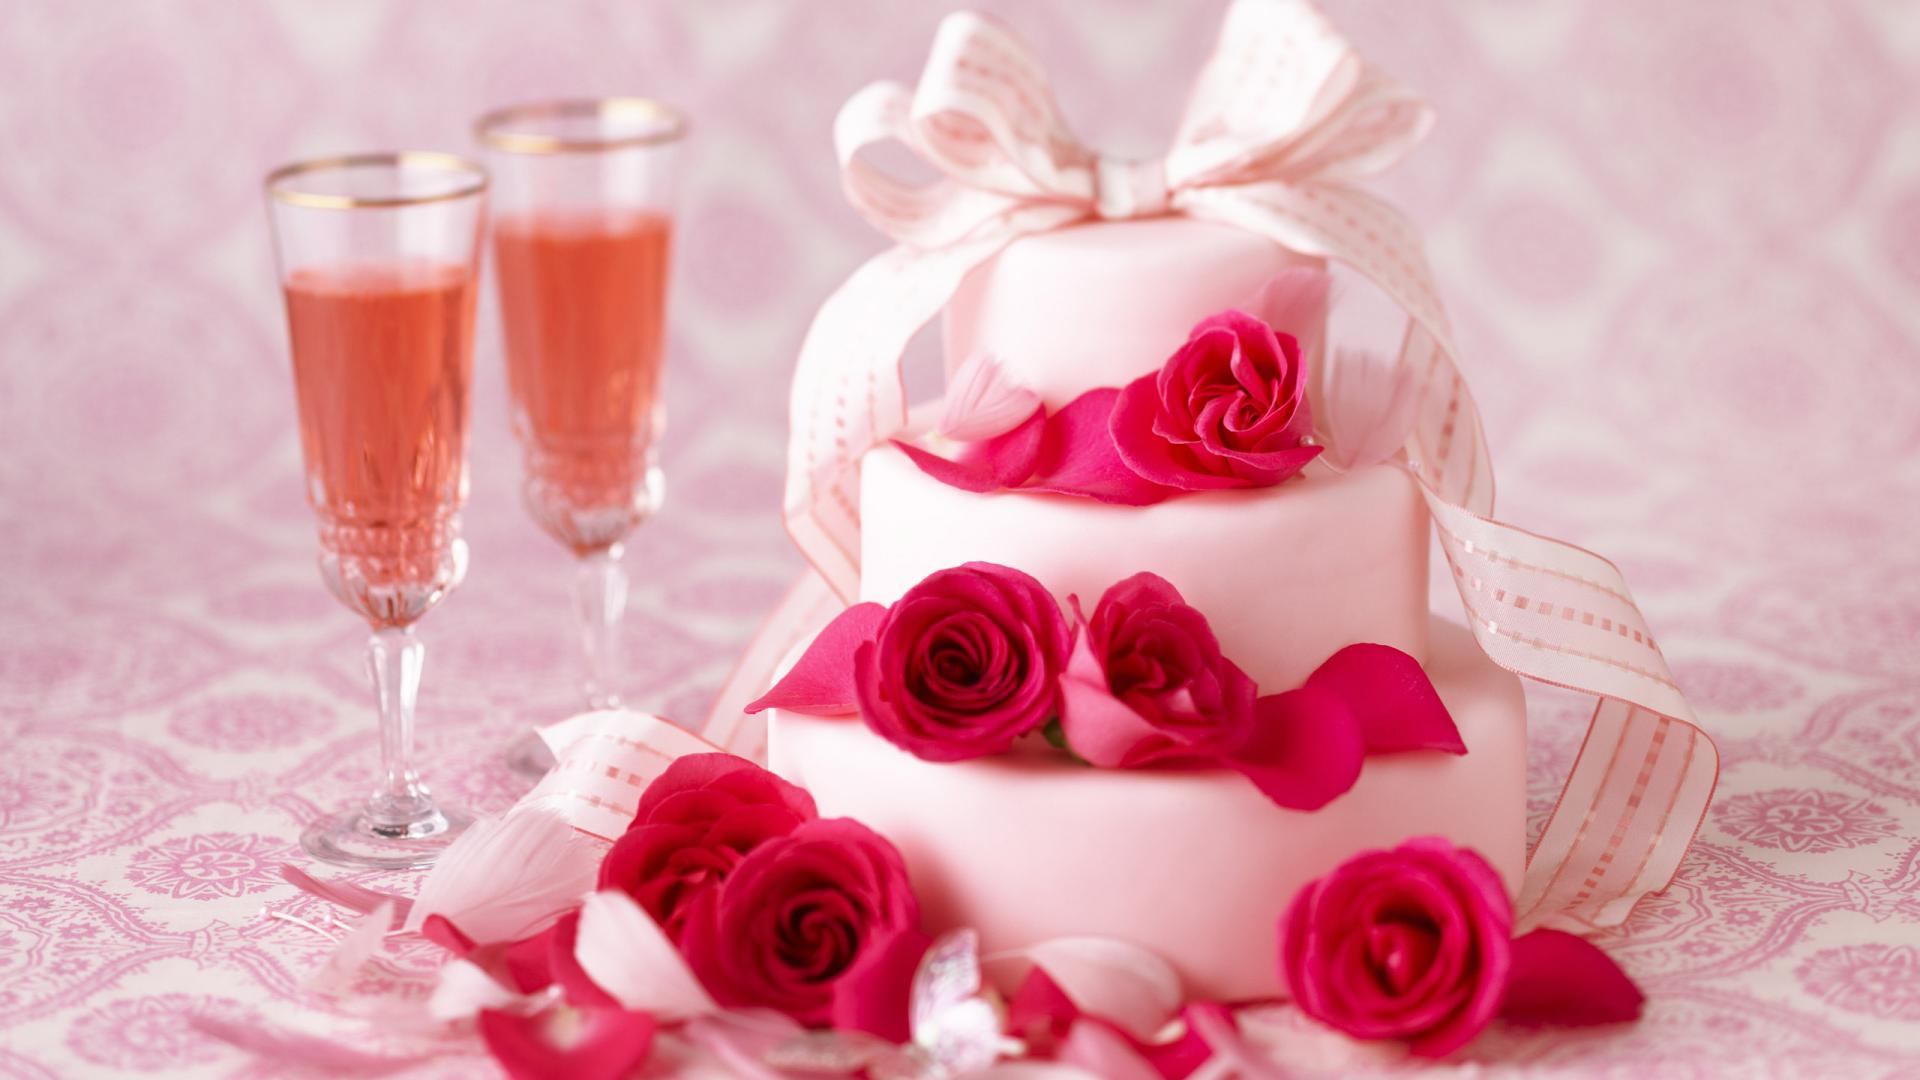 Cakes images wedding cake hd wallpaper and background photos - Images Of Wedding Cakes Wallpapers 33 Wallpapers